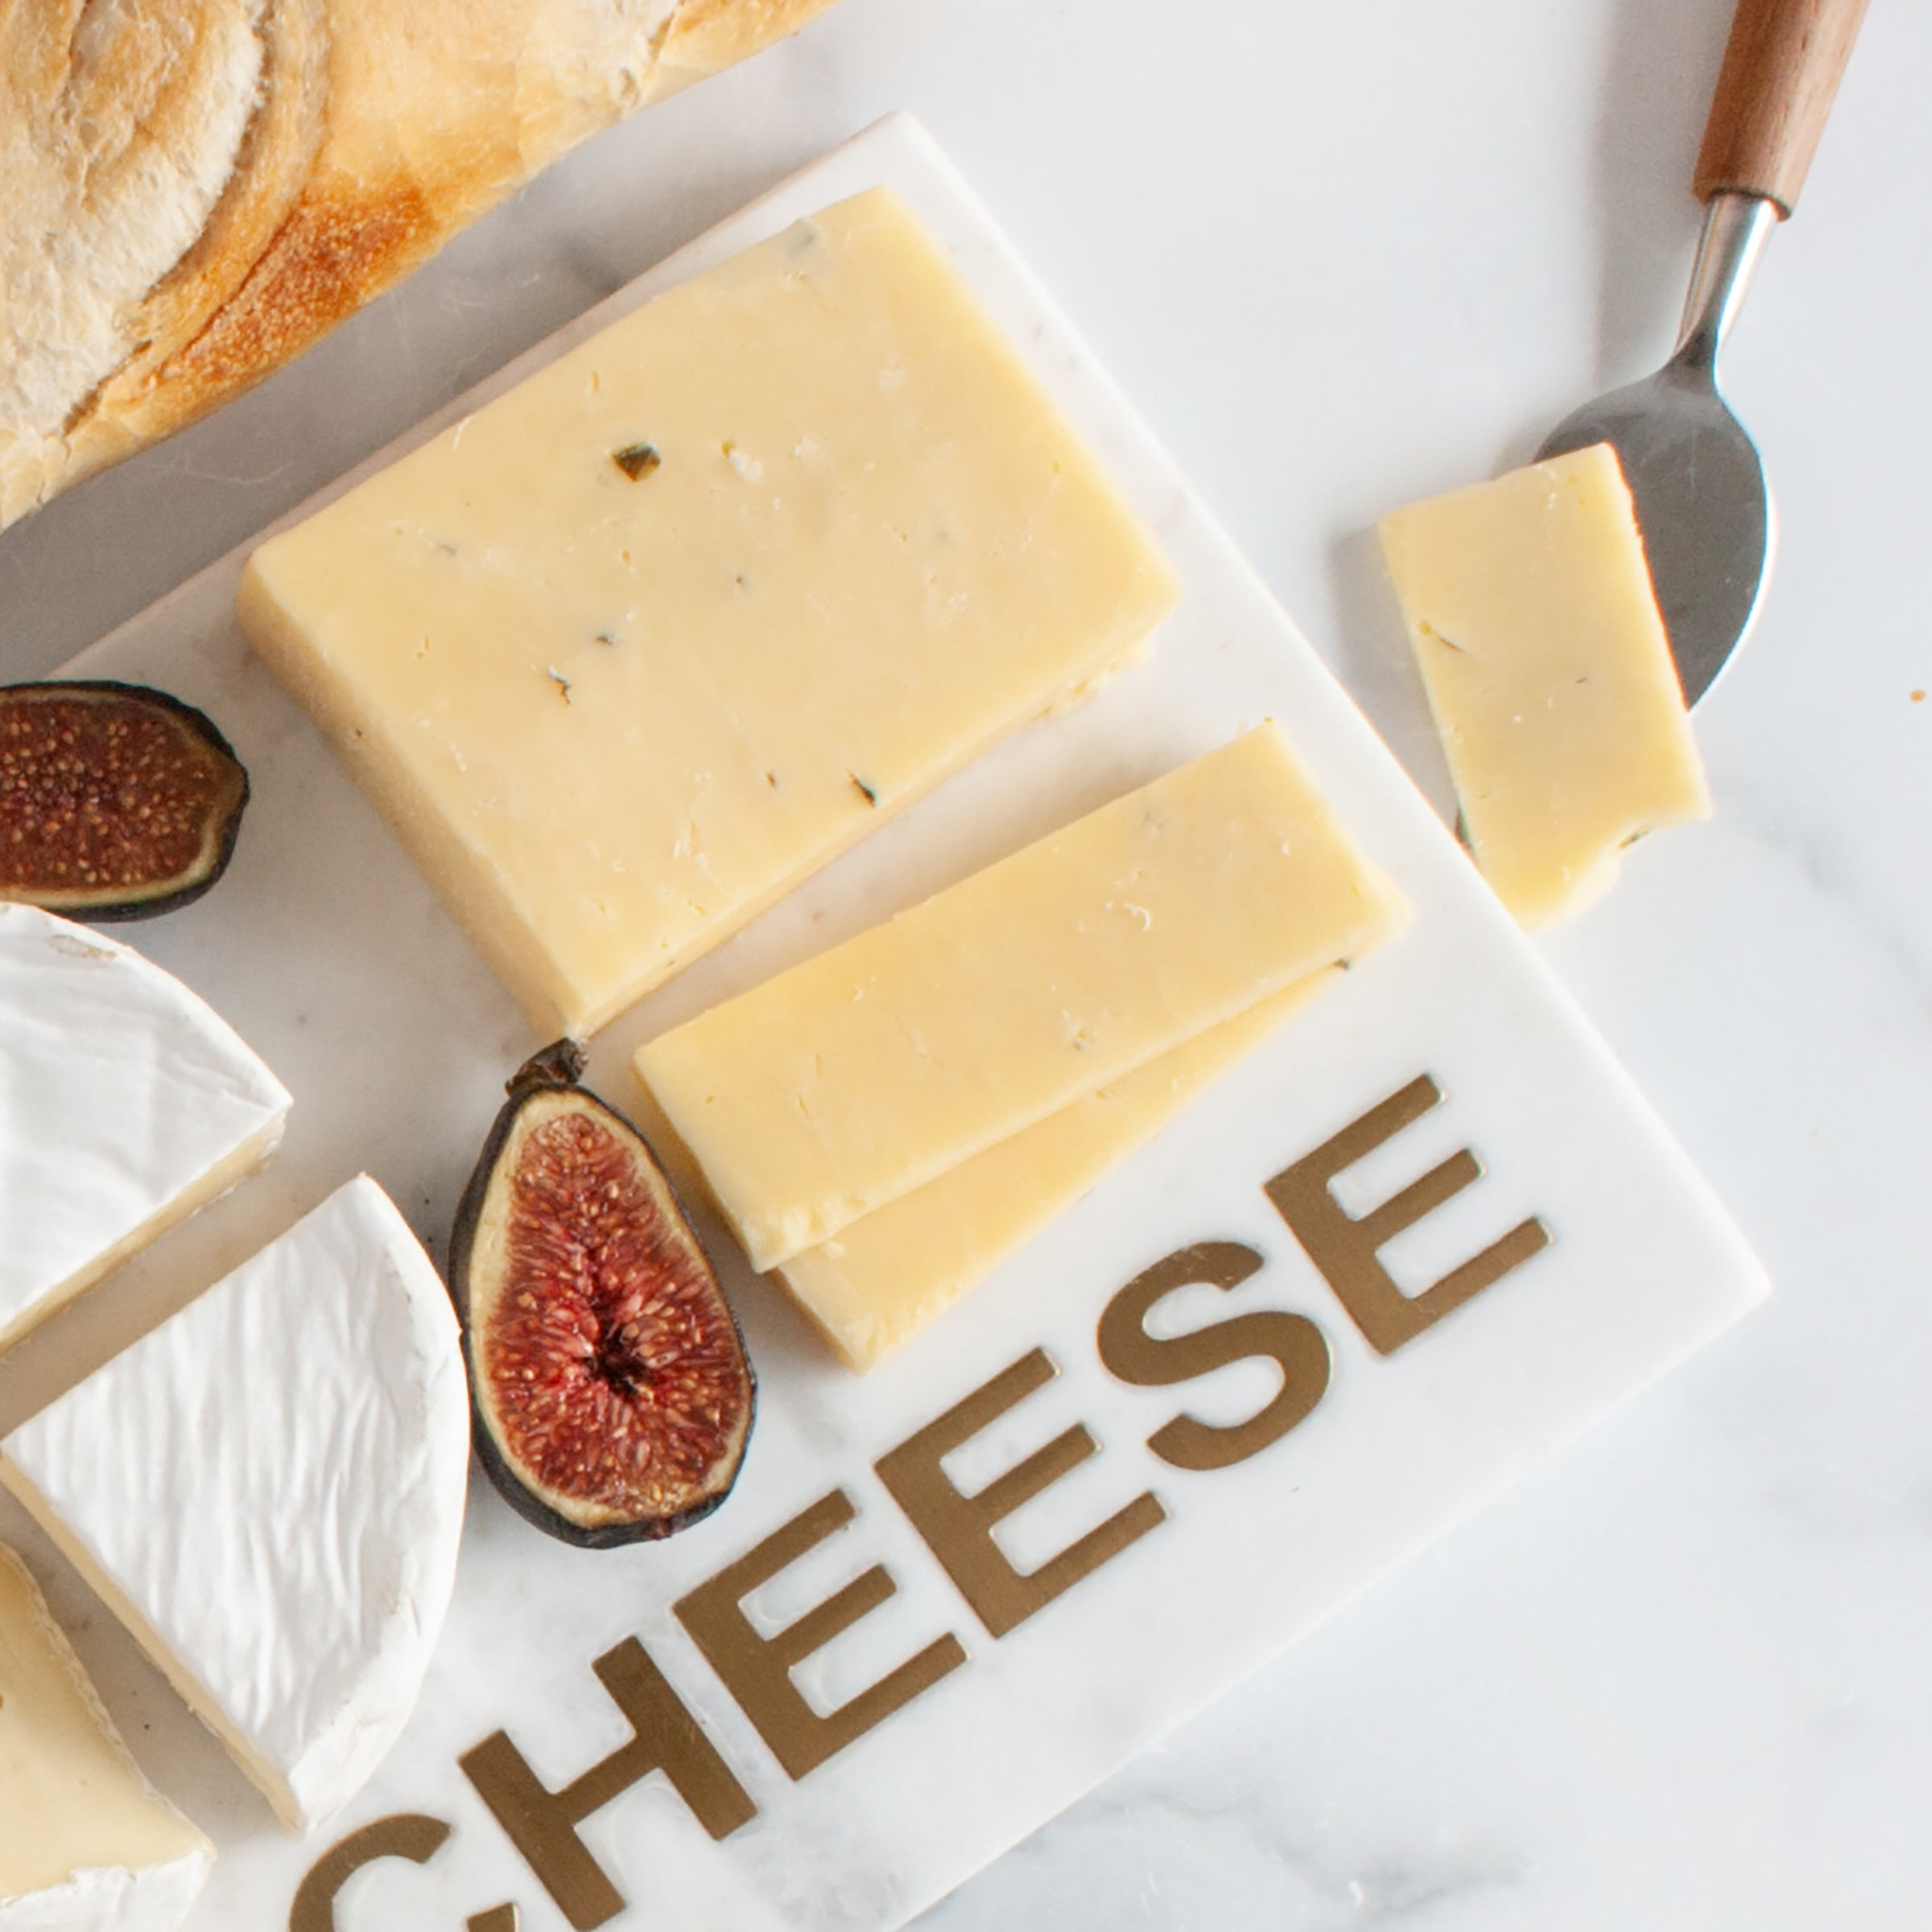 5 Spoke Creamery Forager Cheese